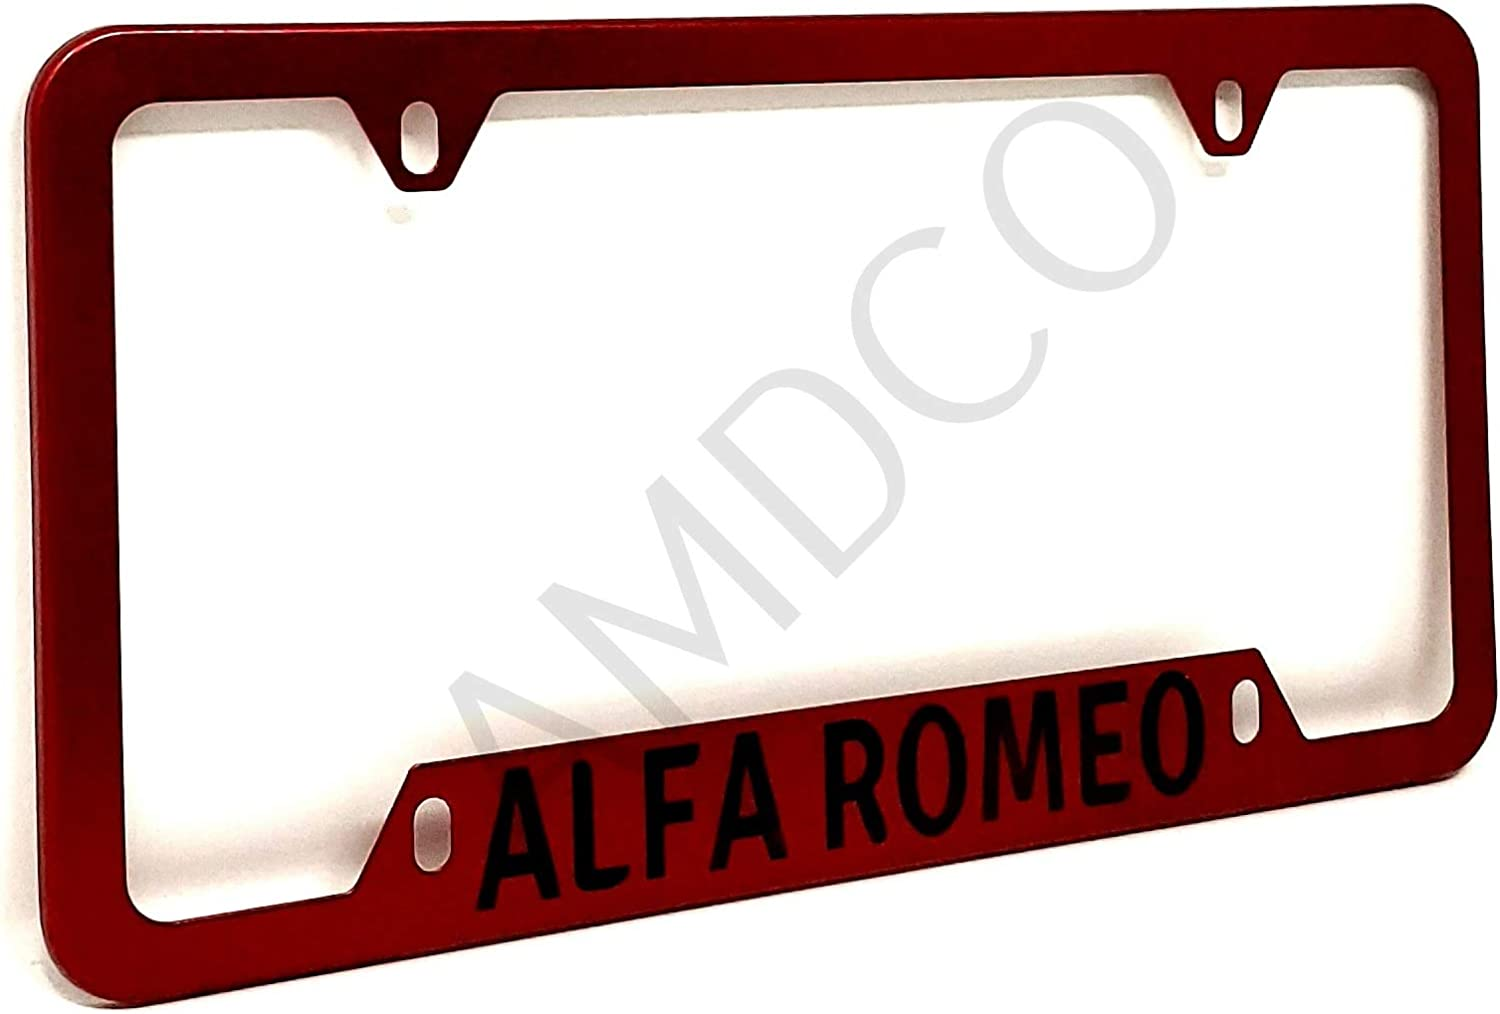 AMDCO - for ALFA Romeo 600 barchetta 750 500x License Plate Cover Holder Frame Badge Stickers Decals with Strong 3M Includes Instructions Measure Before Purchase Fitment (Pack of 1) RED